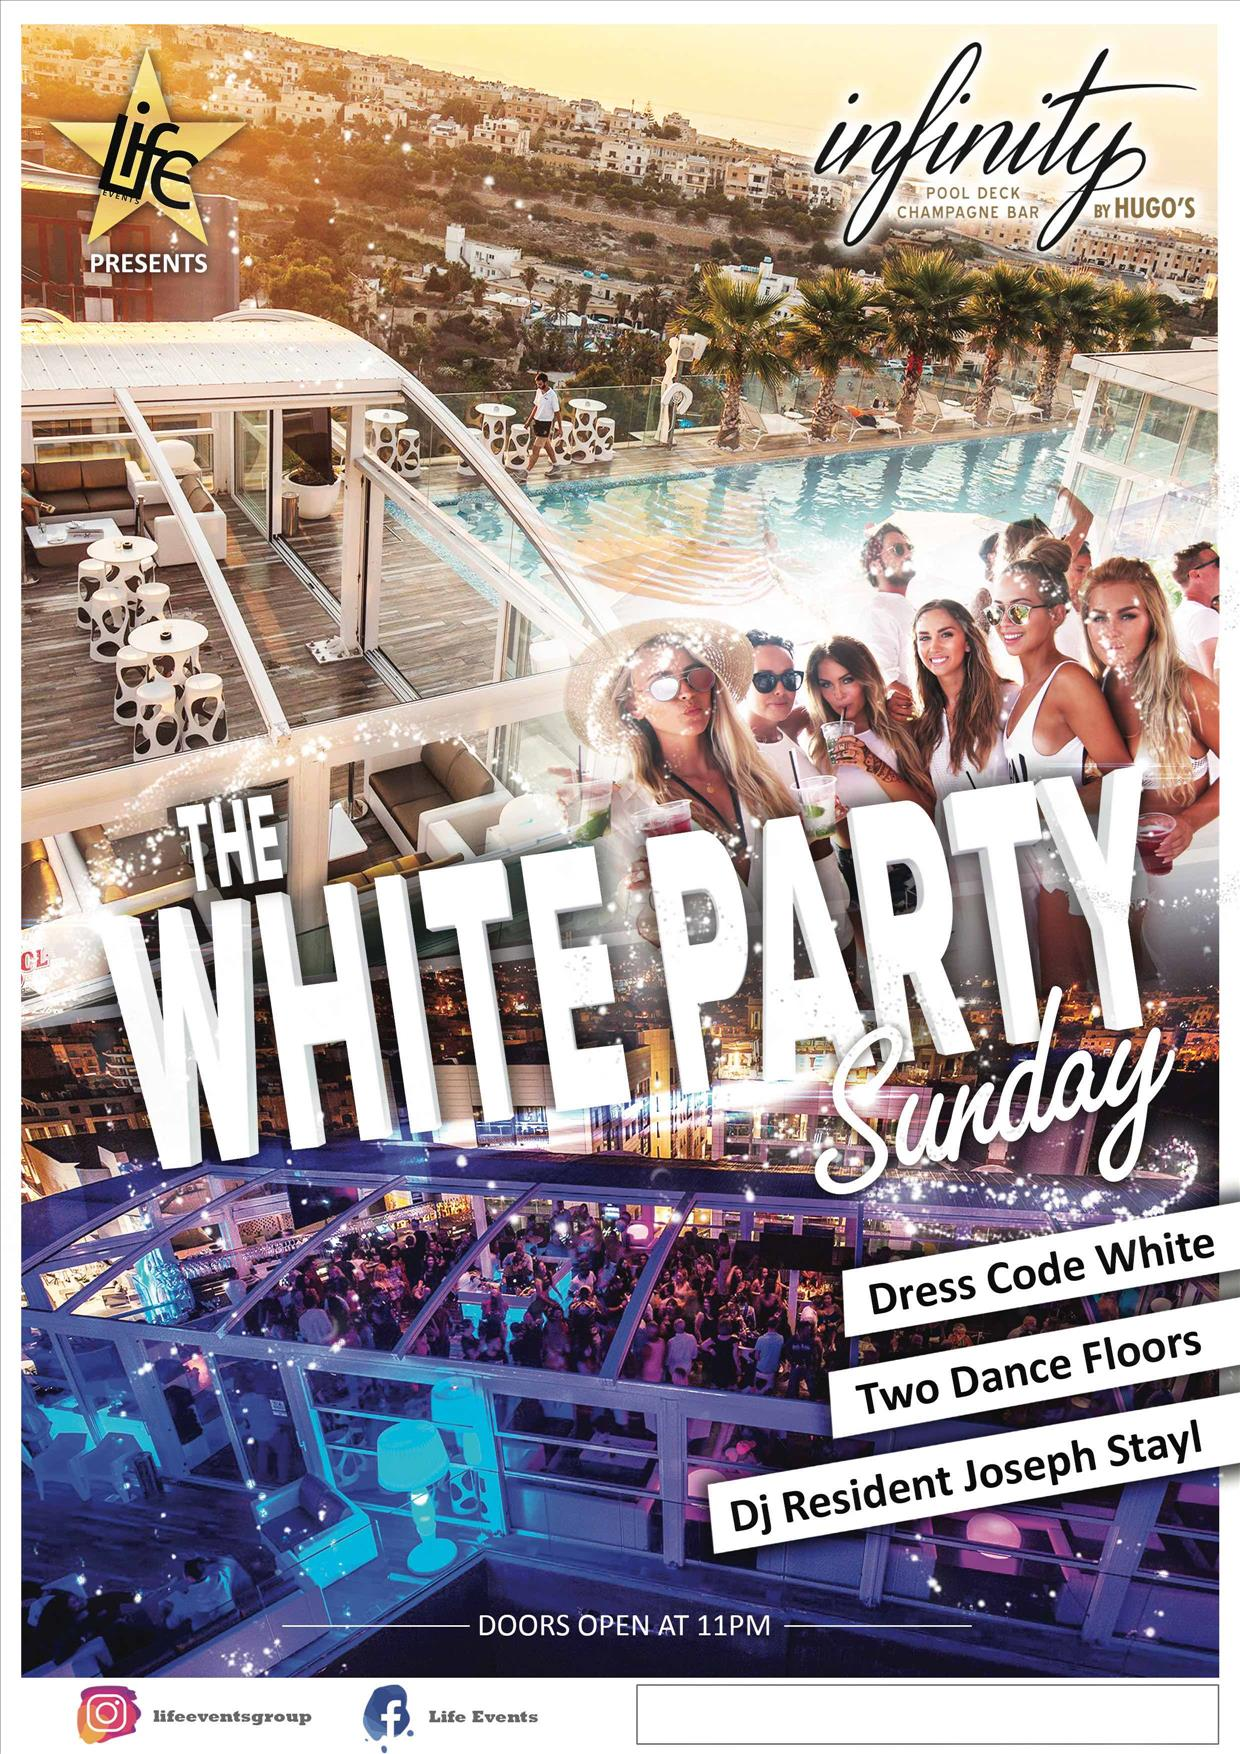 The White Party Malta By Life Events flyer